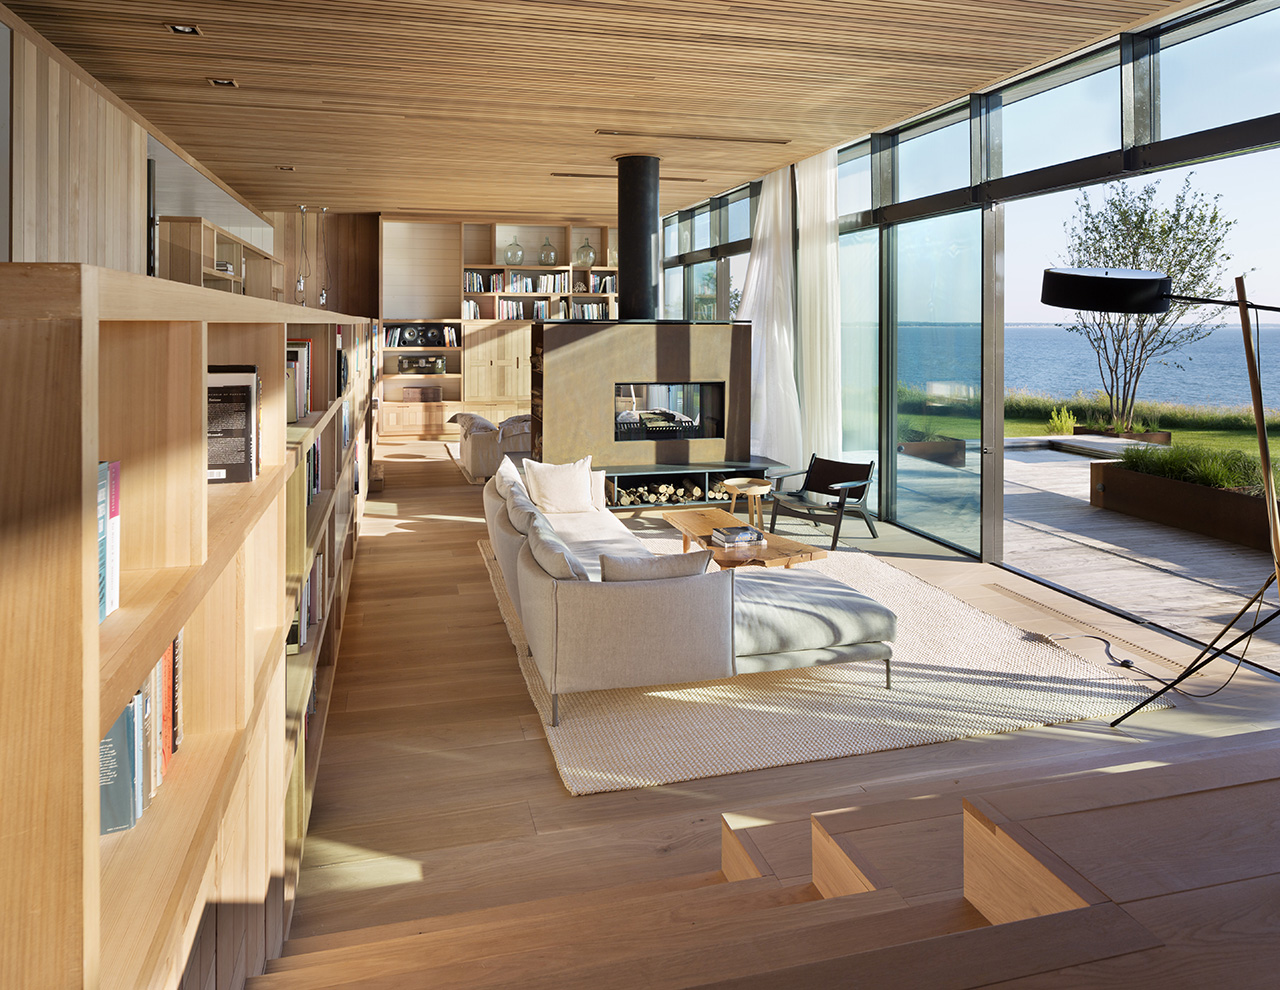 The family room overlooks the large yard and the picturesque Peconic Bay.